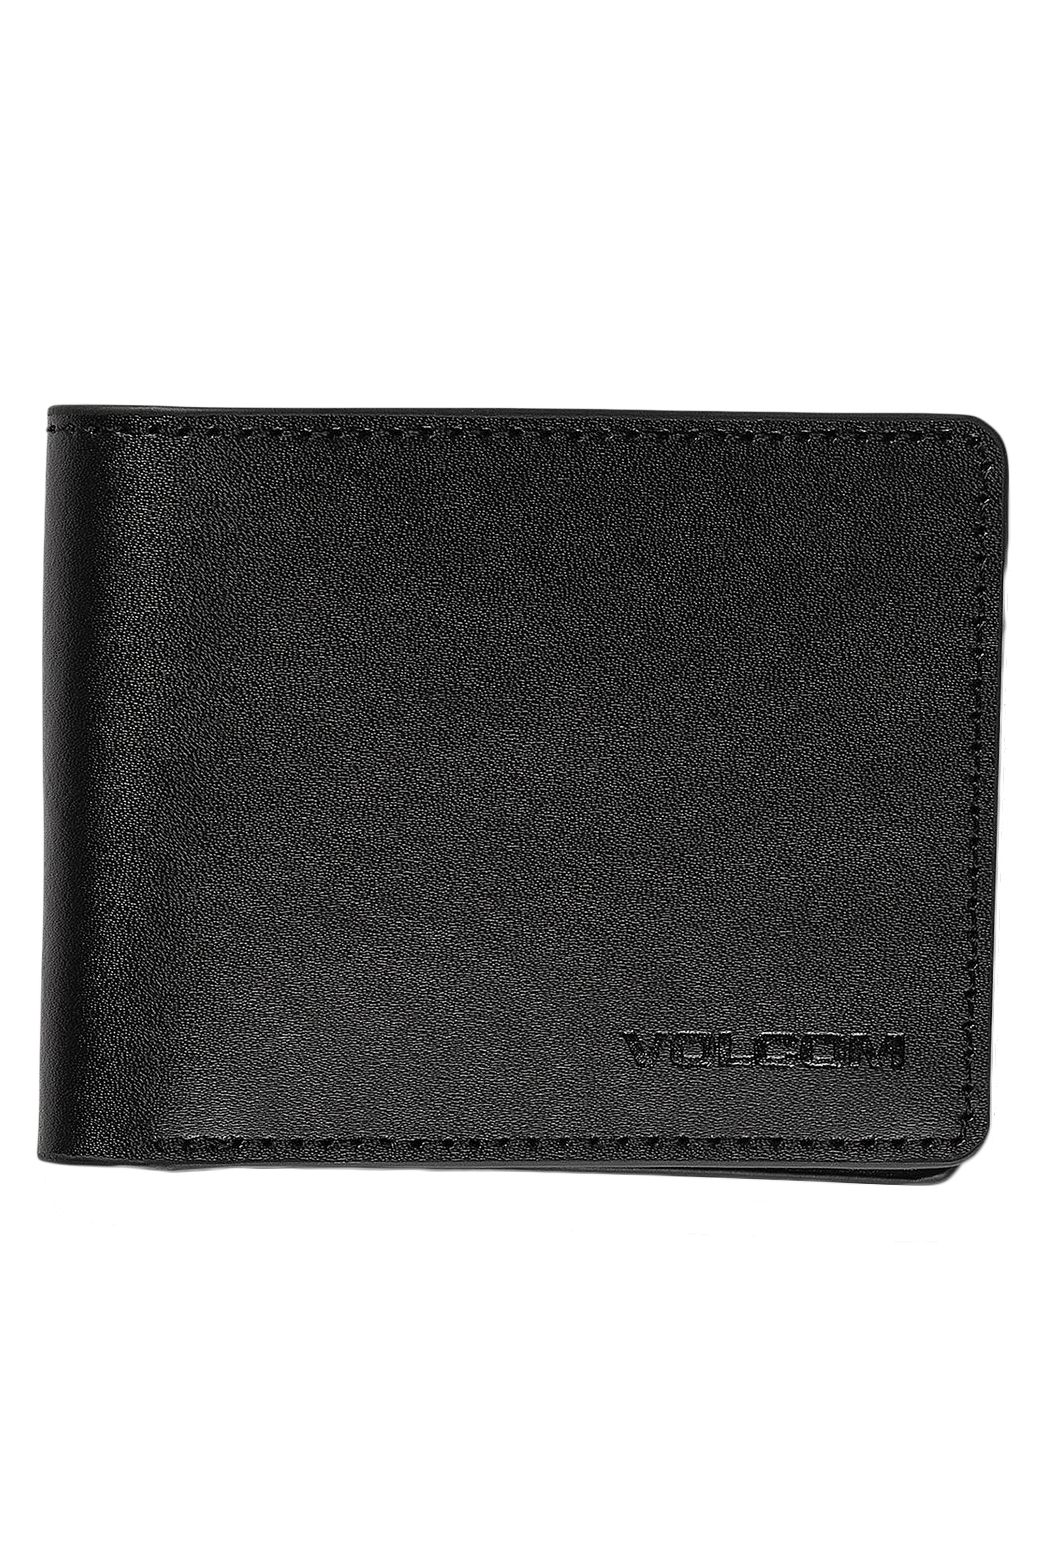 Volcom Leather Wallet EVERS LEATHER Black